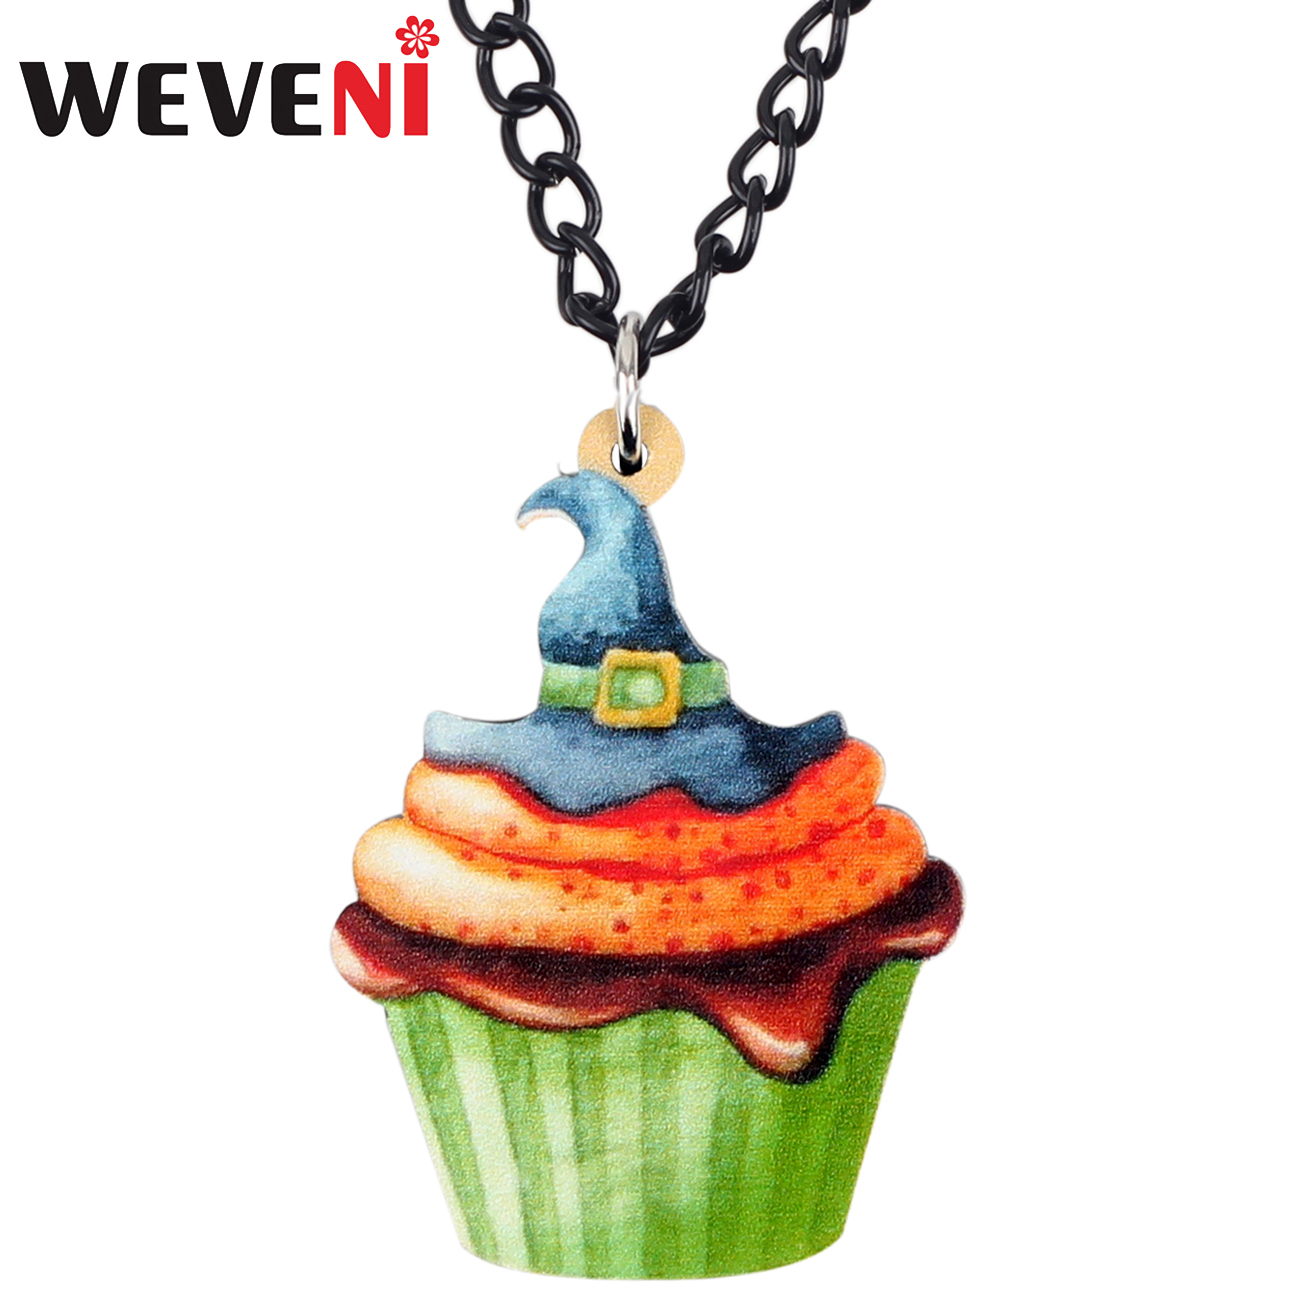 Jewellery & Watches Gentle Weveni Acrylic Halloween Cartoon Hat Cupcake Necklace Pendant Collier Cute Food Jewelry For Women Girls Teens Gift Accessories To Make One Feel At Ease And Energetic